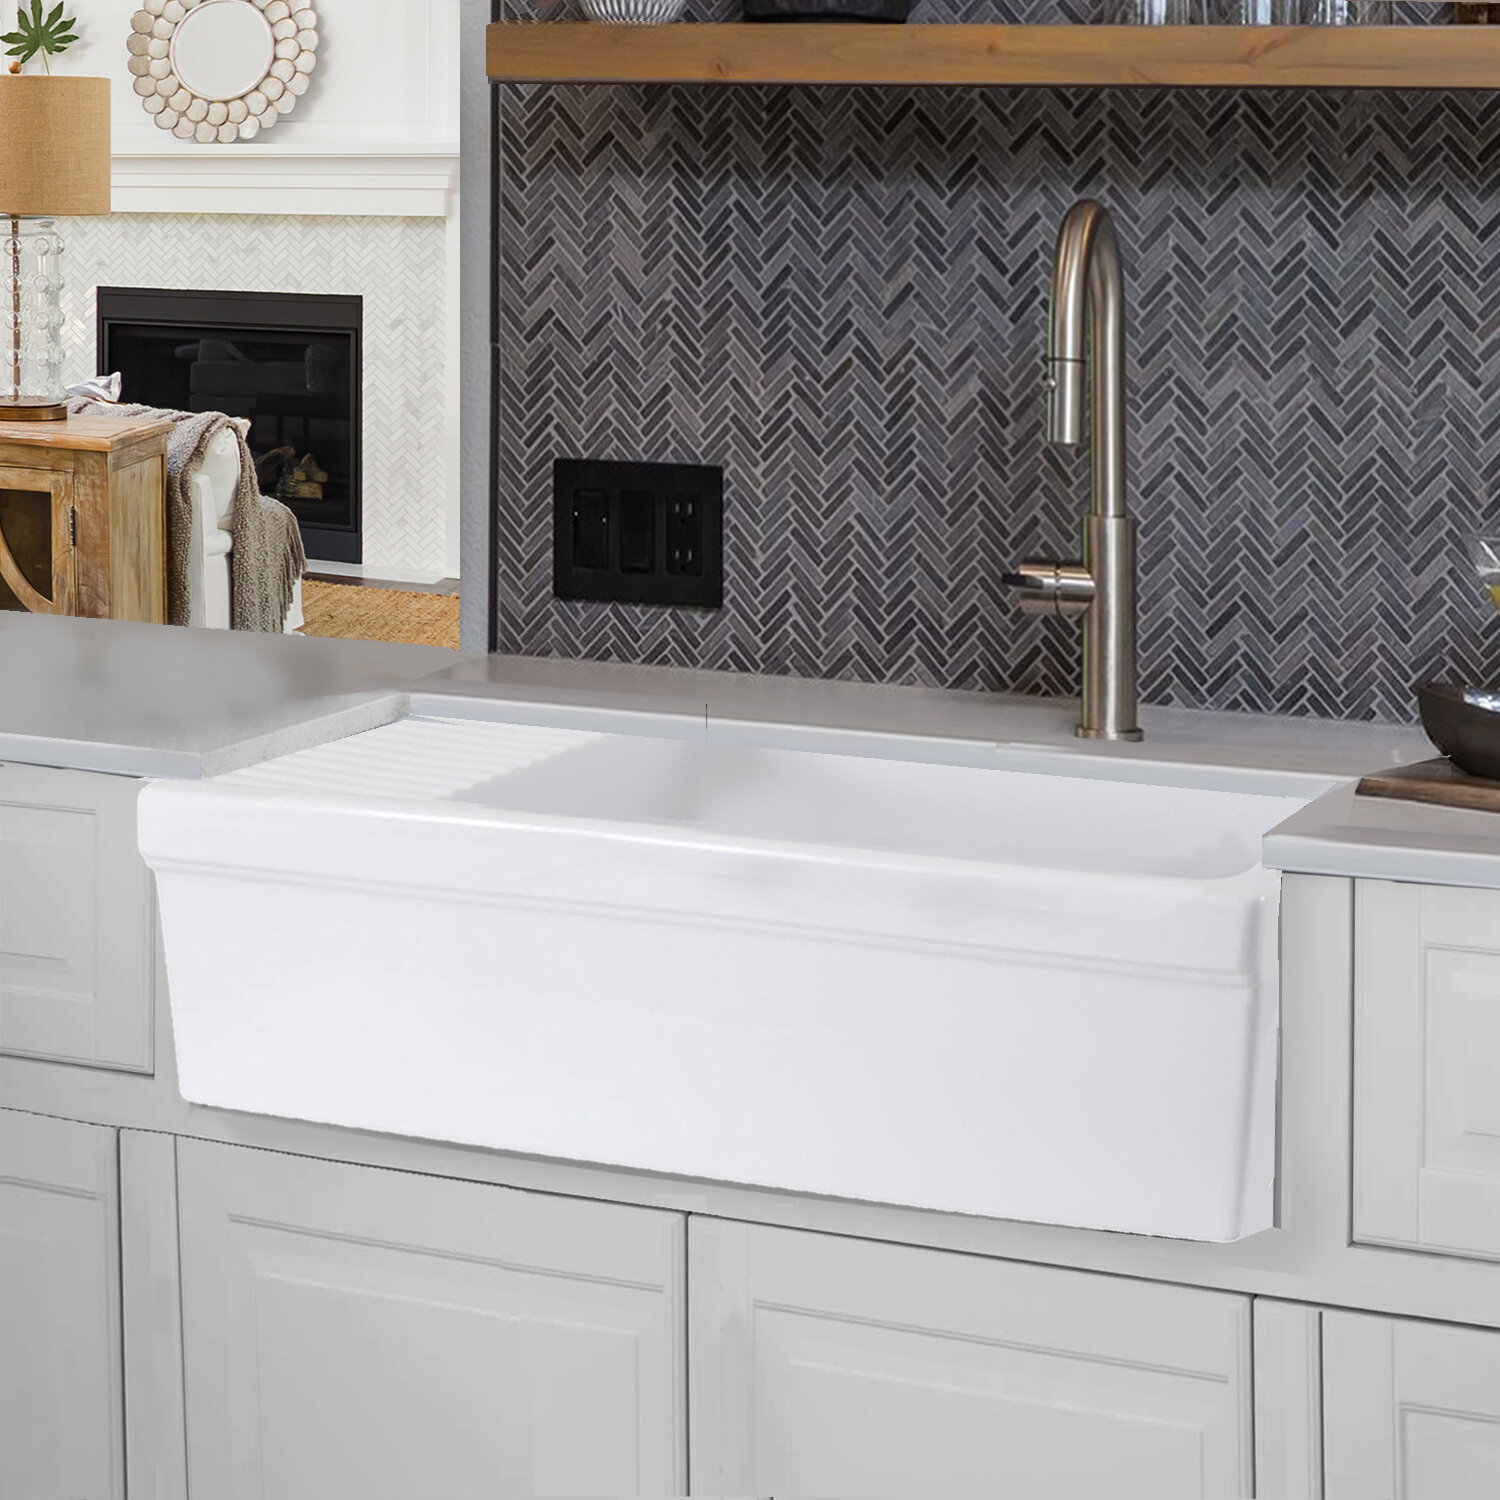 Cape 36 L X 20 W Farmhouse Kitchen Sink With Built In Drainboard